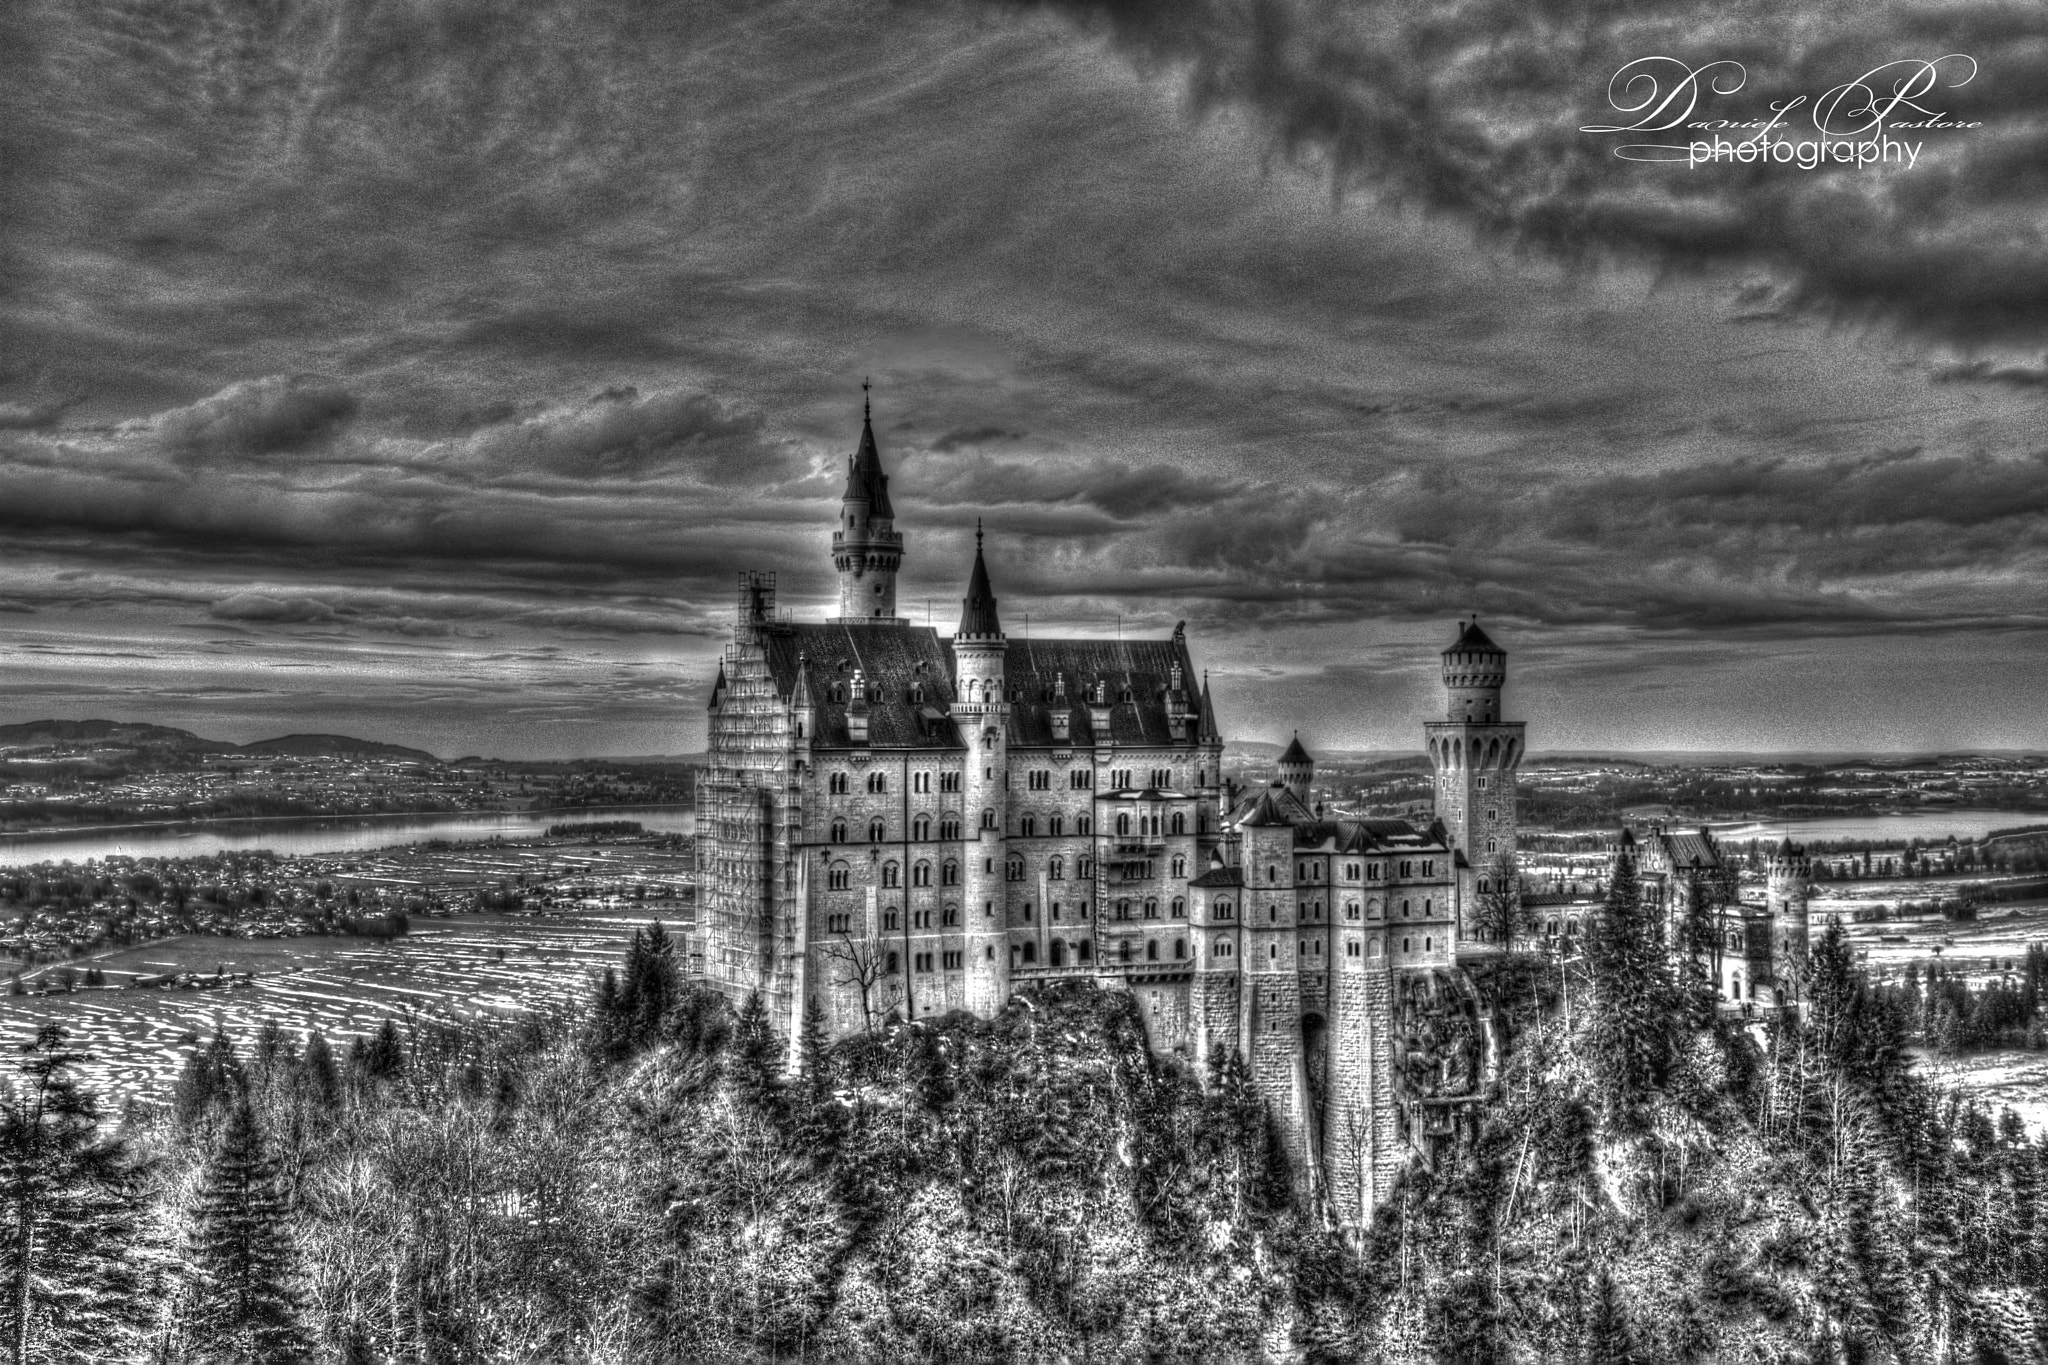 Photograph Neuschwanstein schloss by Daniele Pastore on 500px